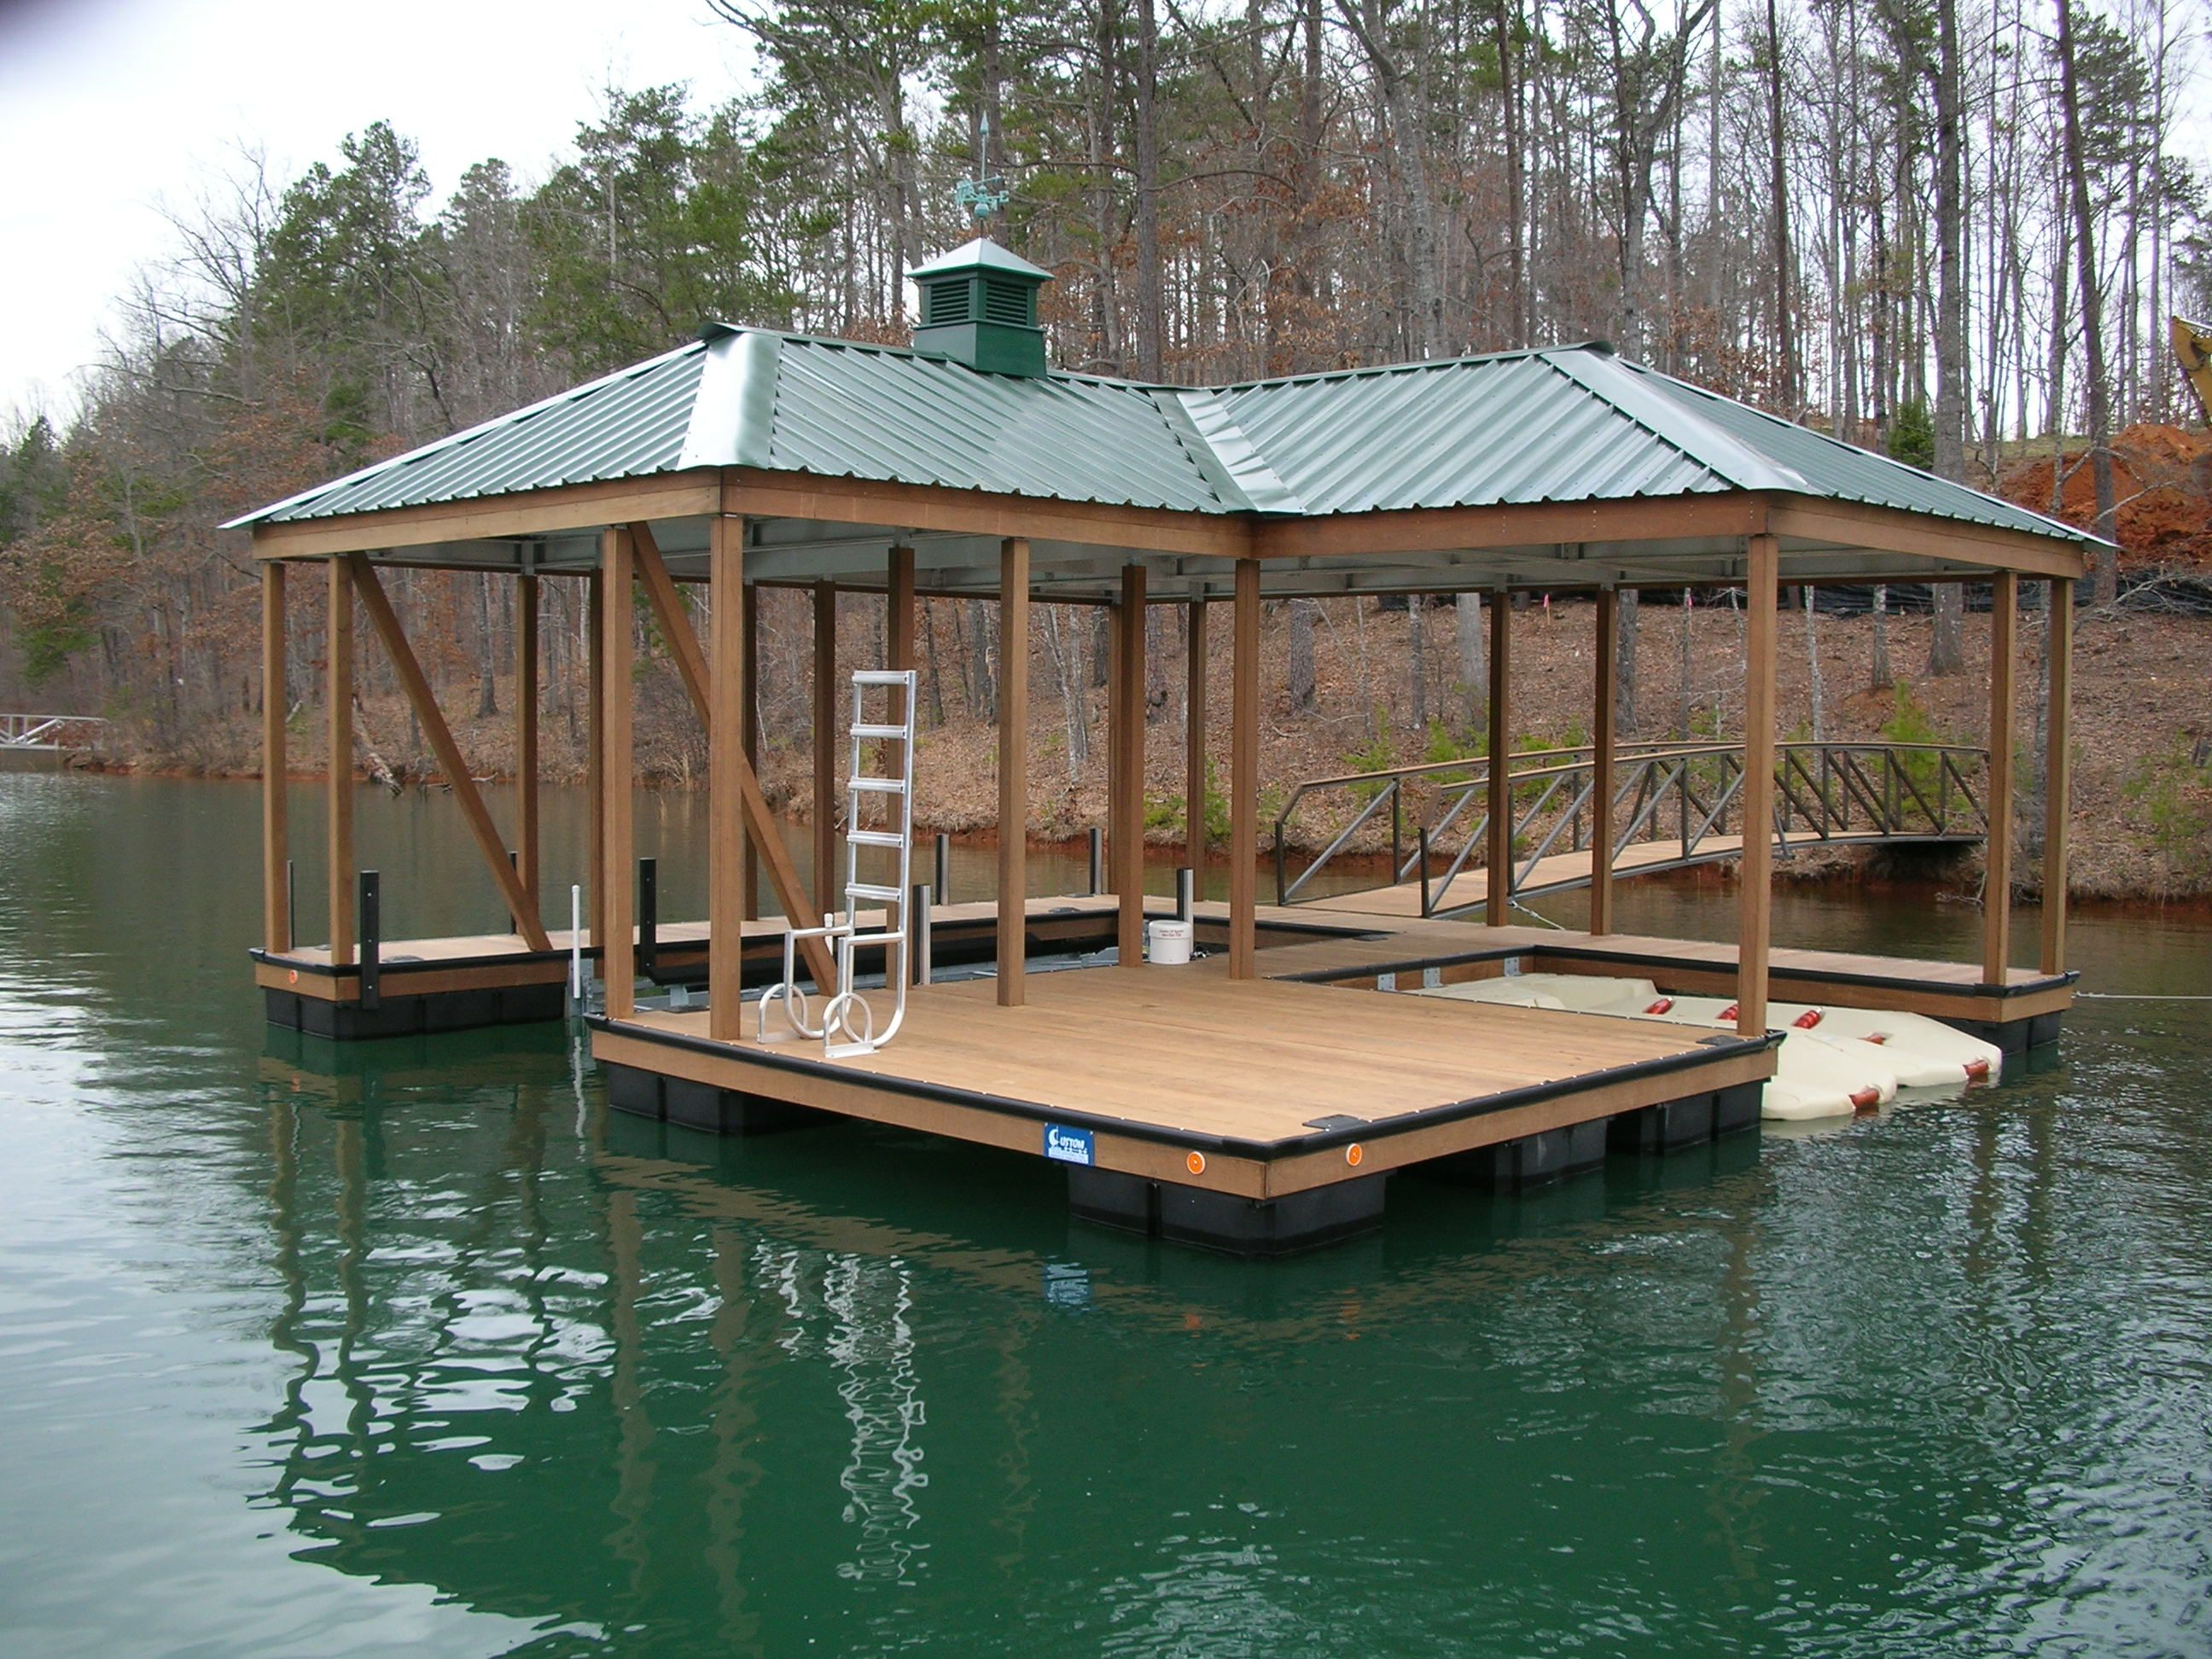 dock ideas | Exterior Home | Pinterest | Dock ideas, Lakes and Boat dock